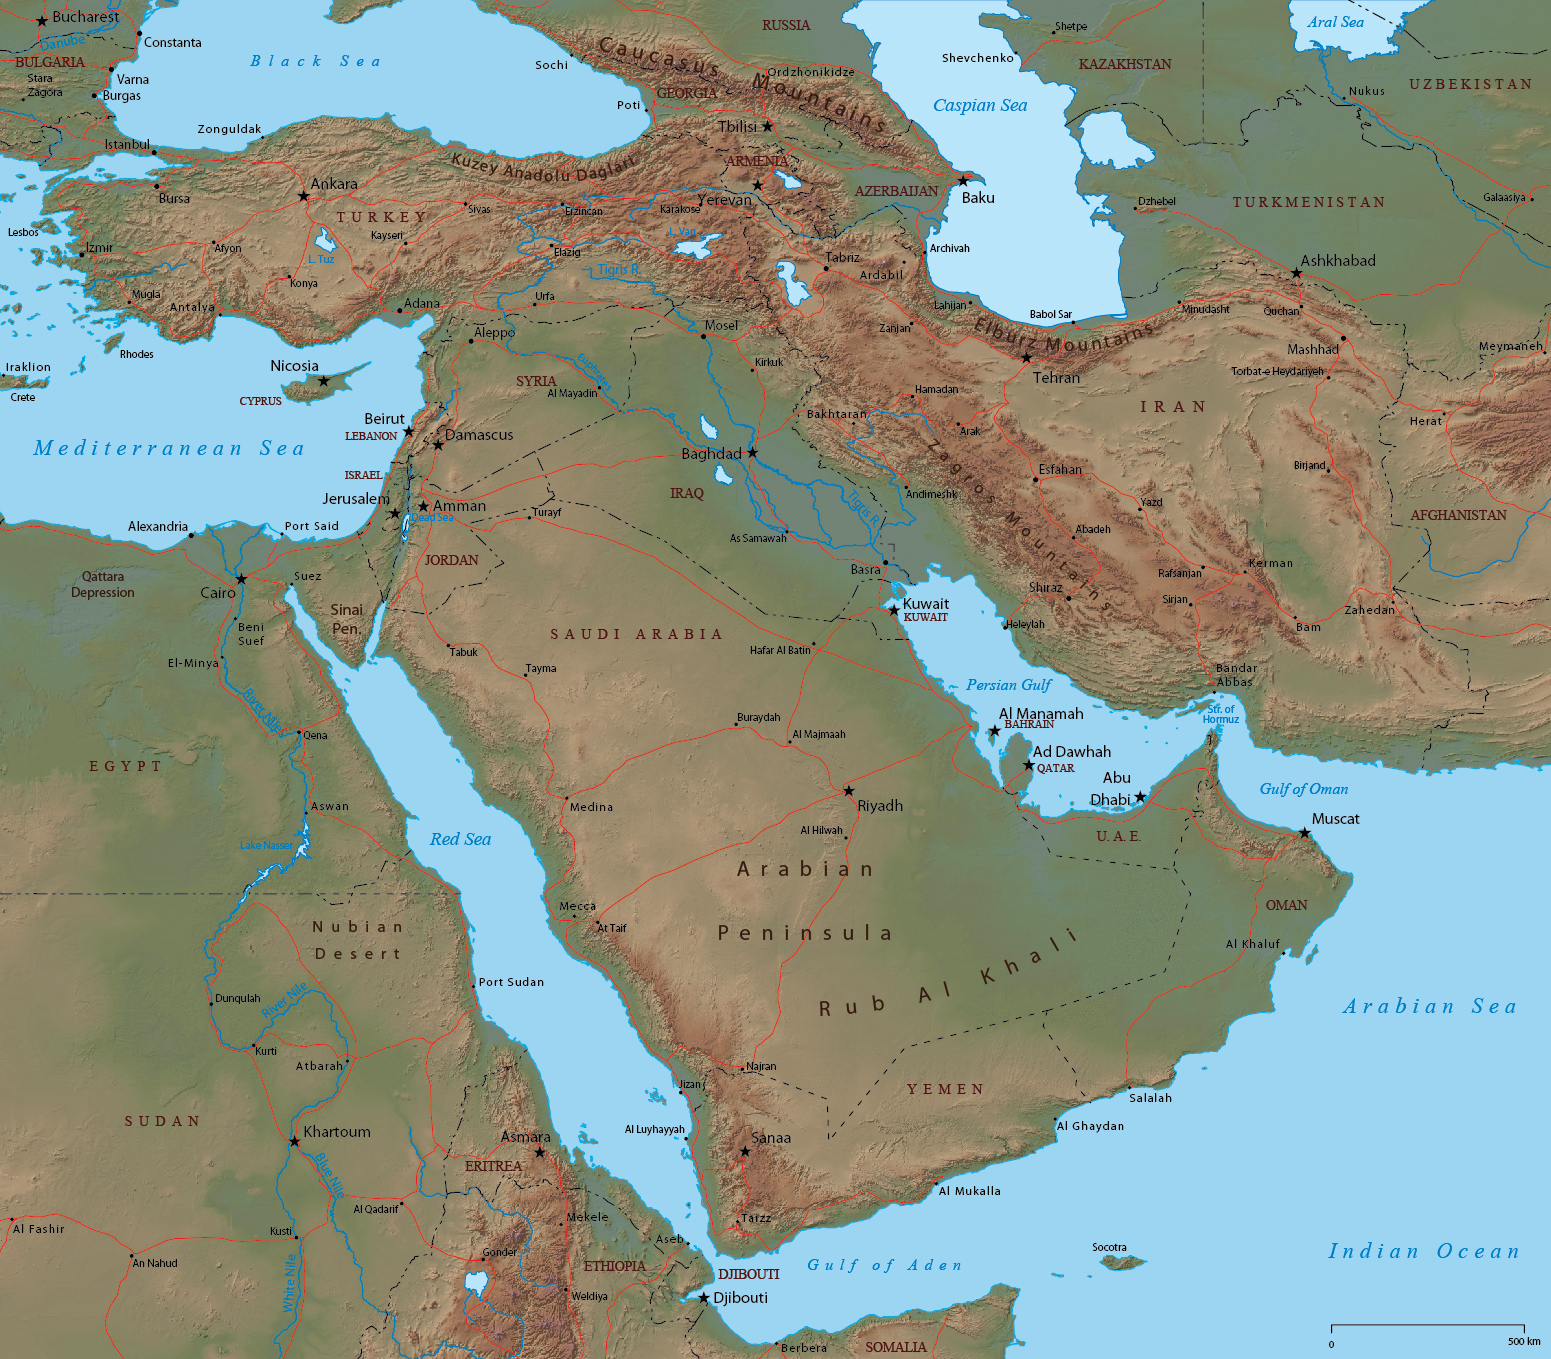 Map of Land locked Middle Eastern Countries